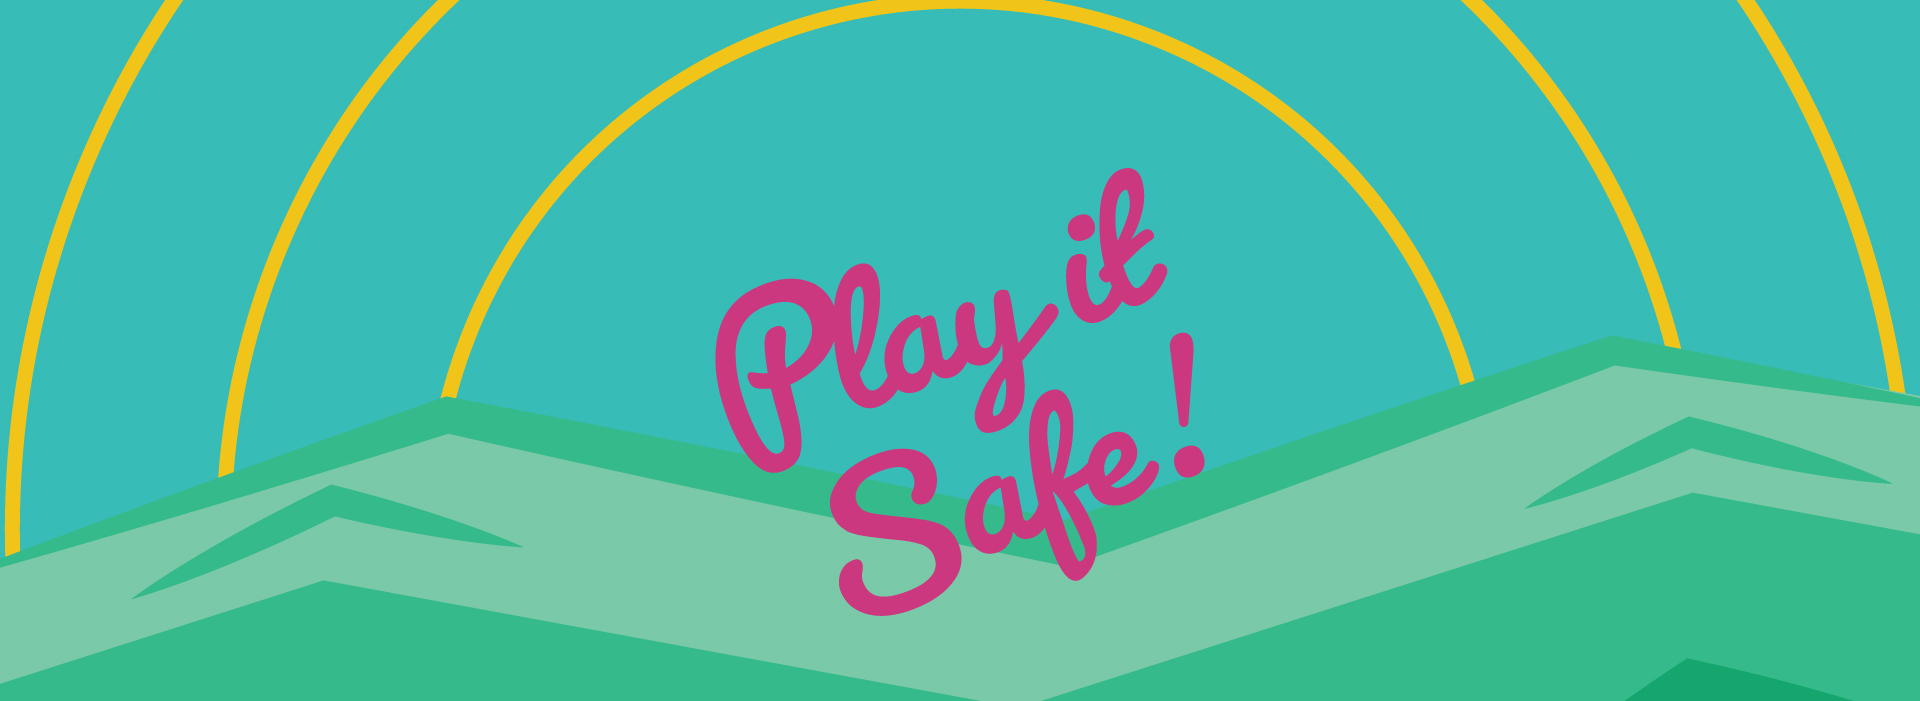 play_it_safe_banner